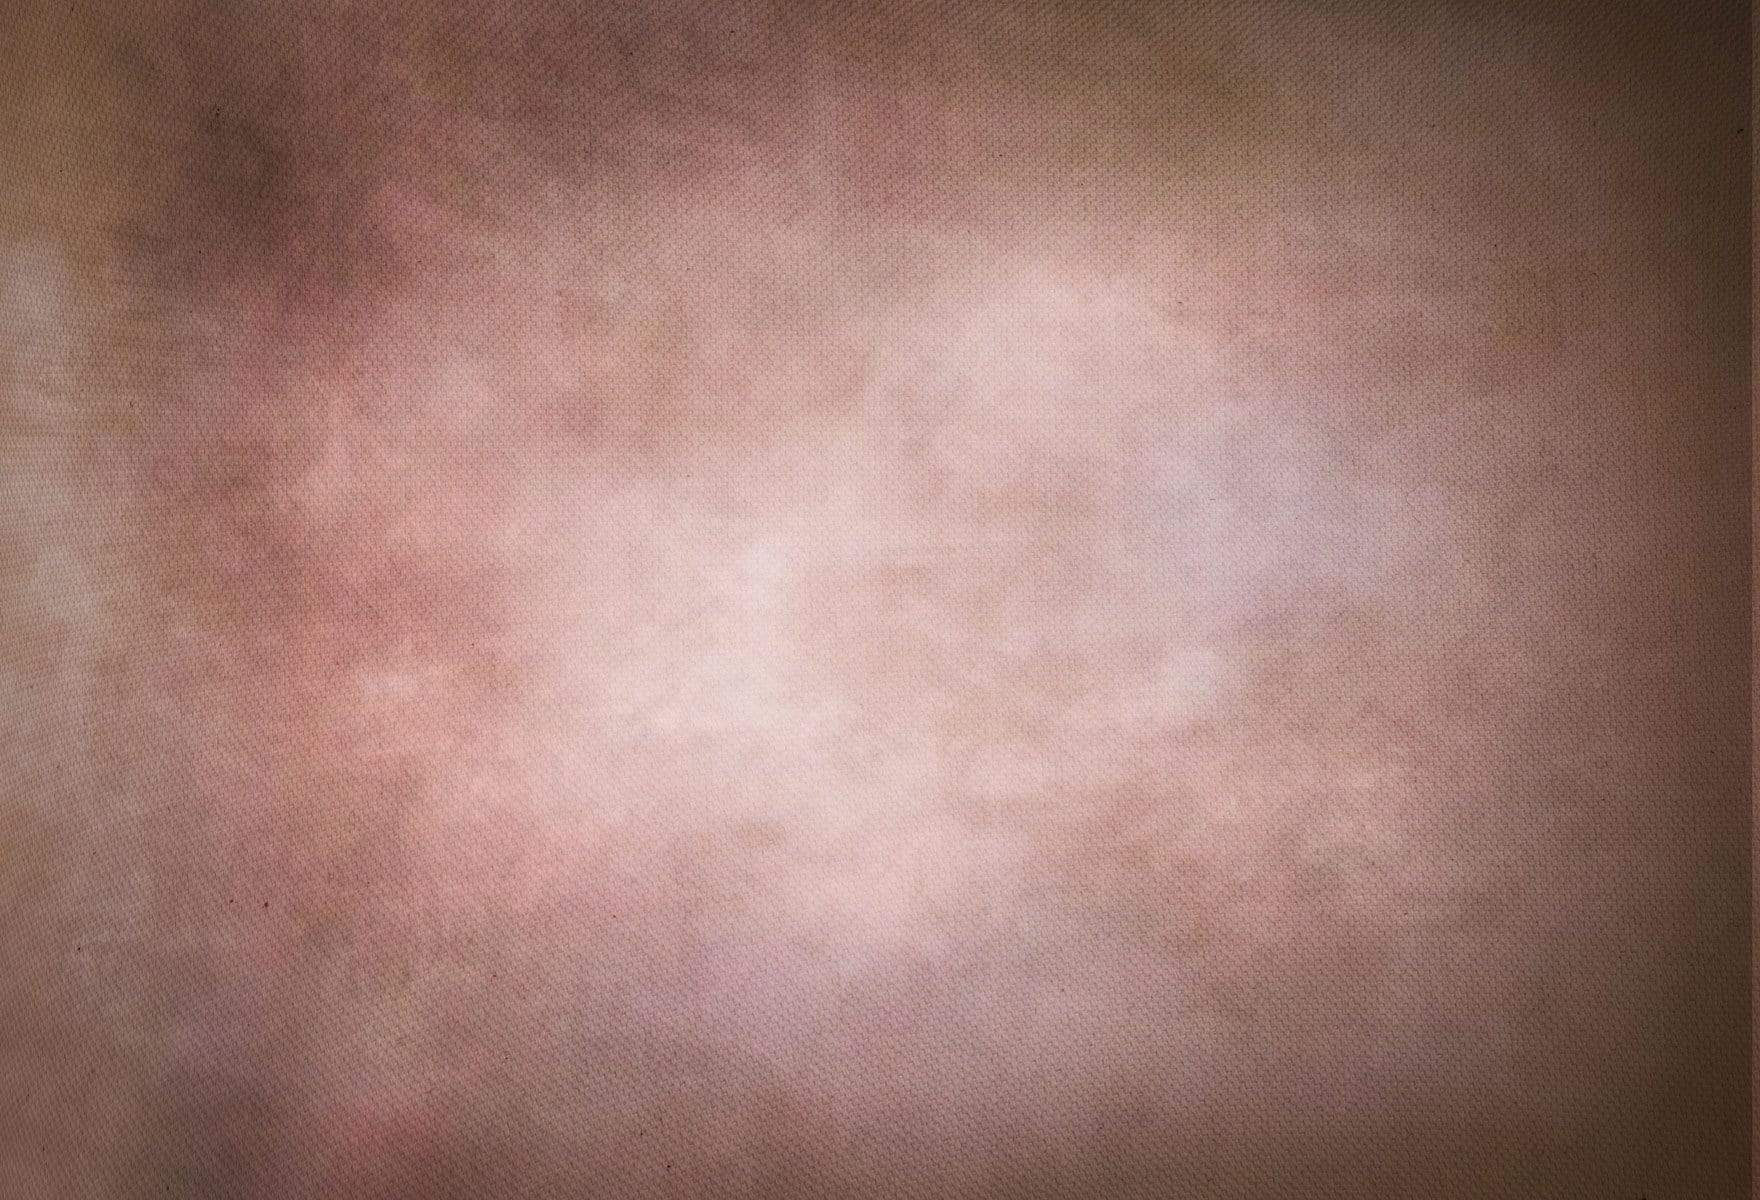 Load image into Gallery viewer, Kate Dark Reddish abstract texture Backdrop for photography